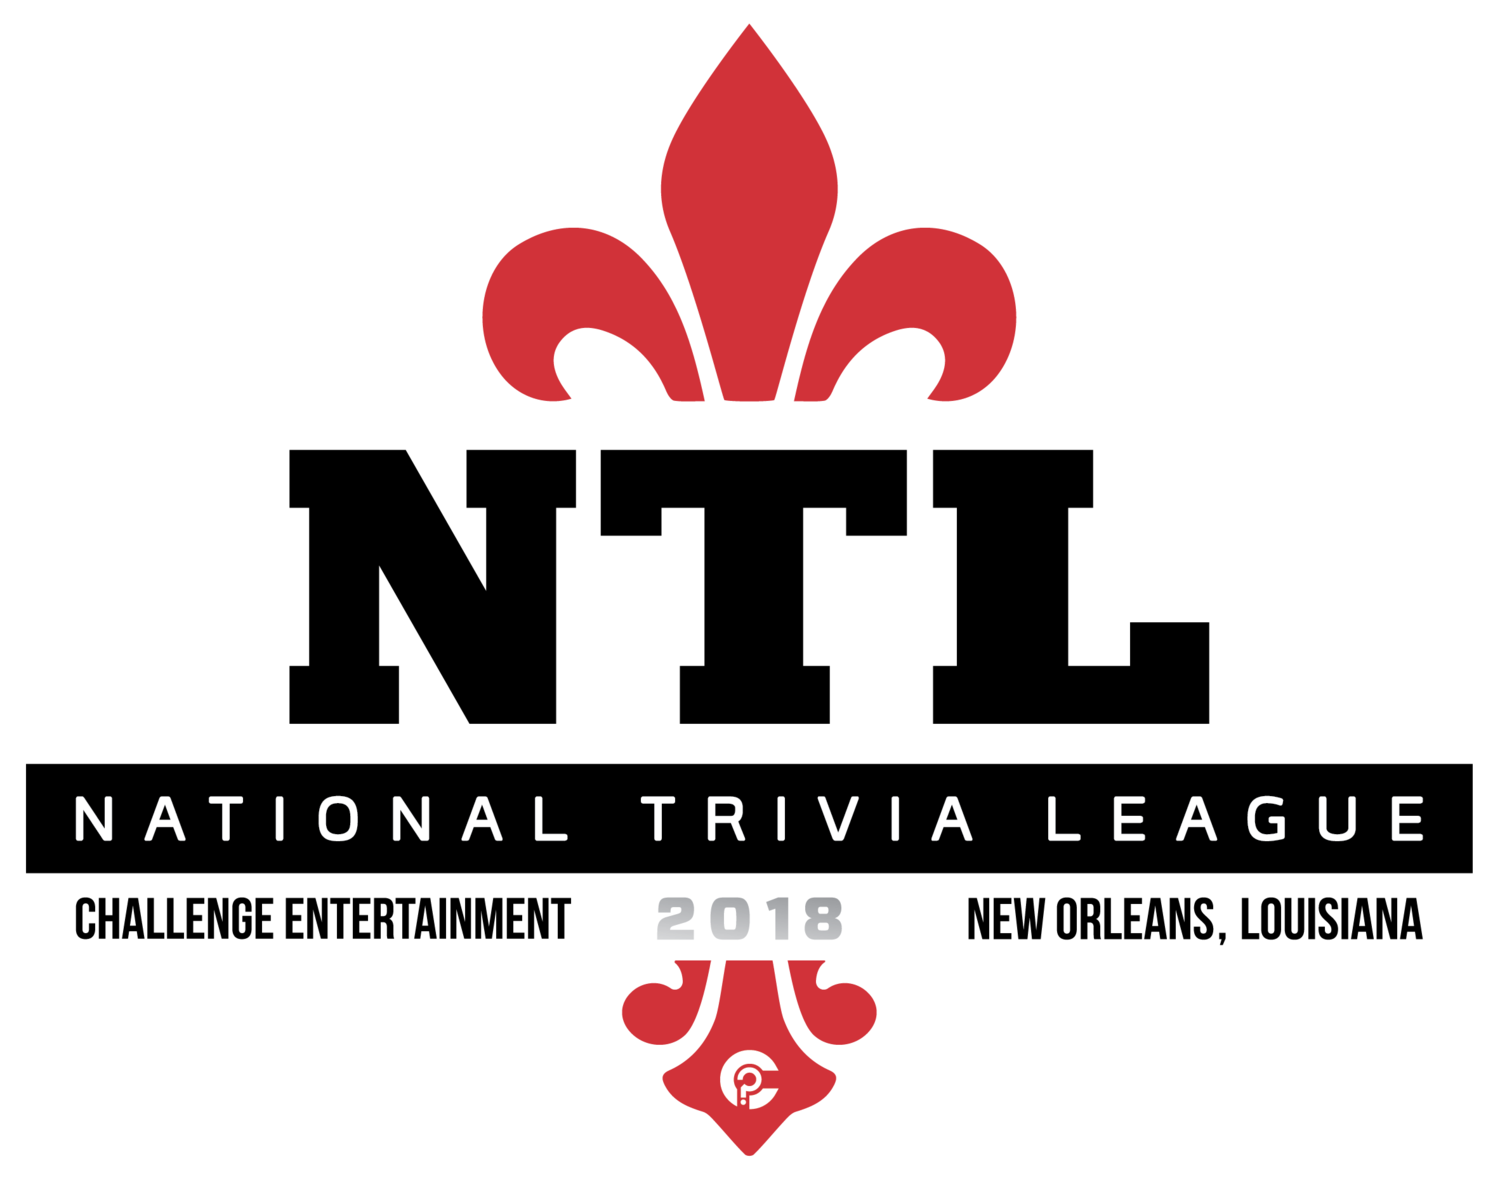 2018 National Trivia League Official Registration Opens July 1st